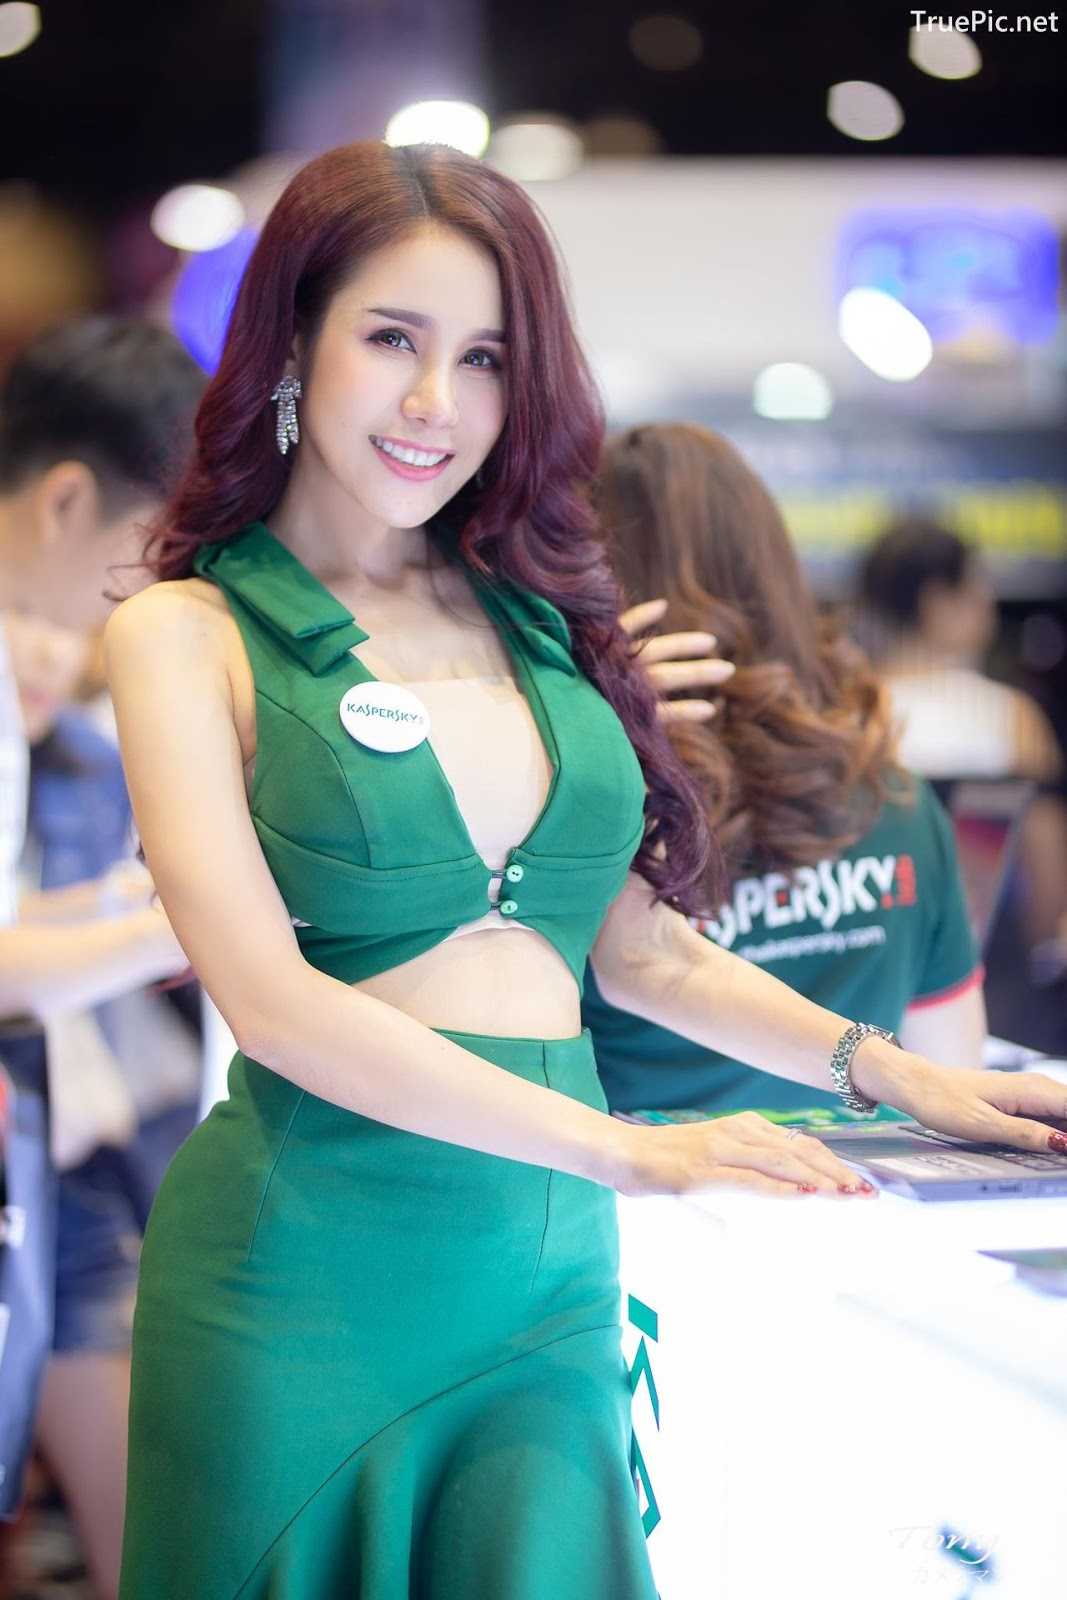 Image-Thailand-Hot-Model-Thai-PG-At-Commart-2018-TruePic.net- Picture-30